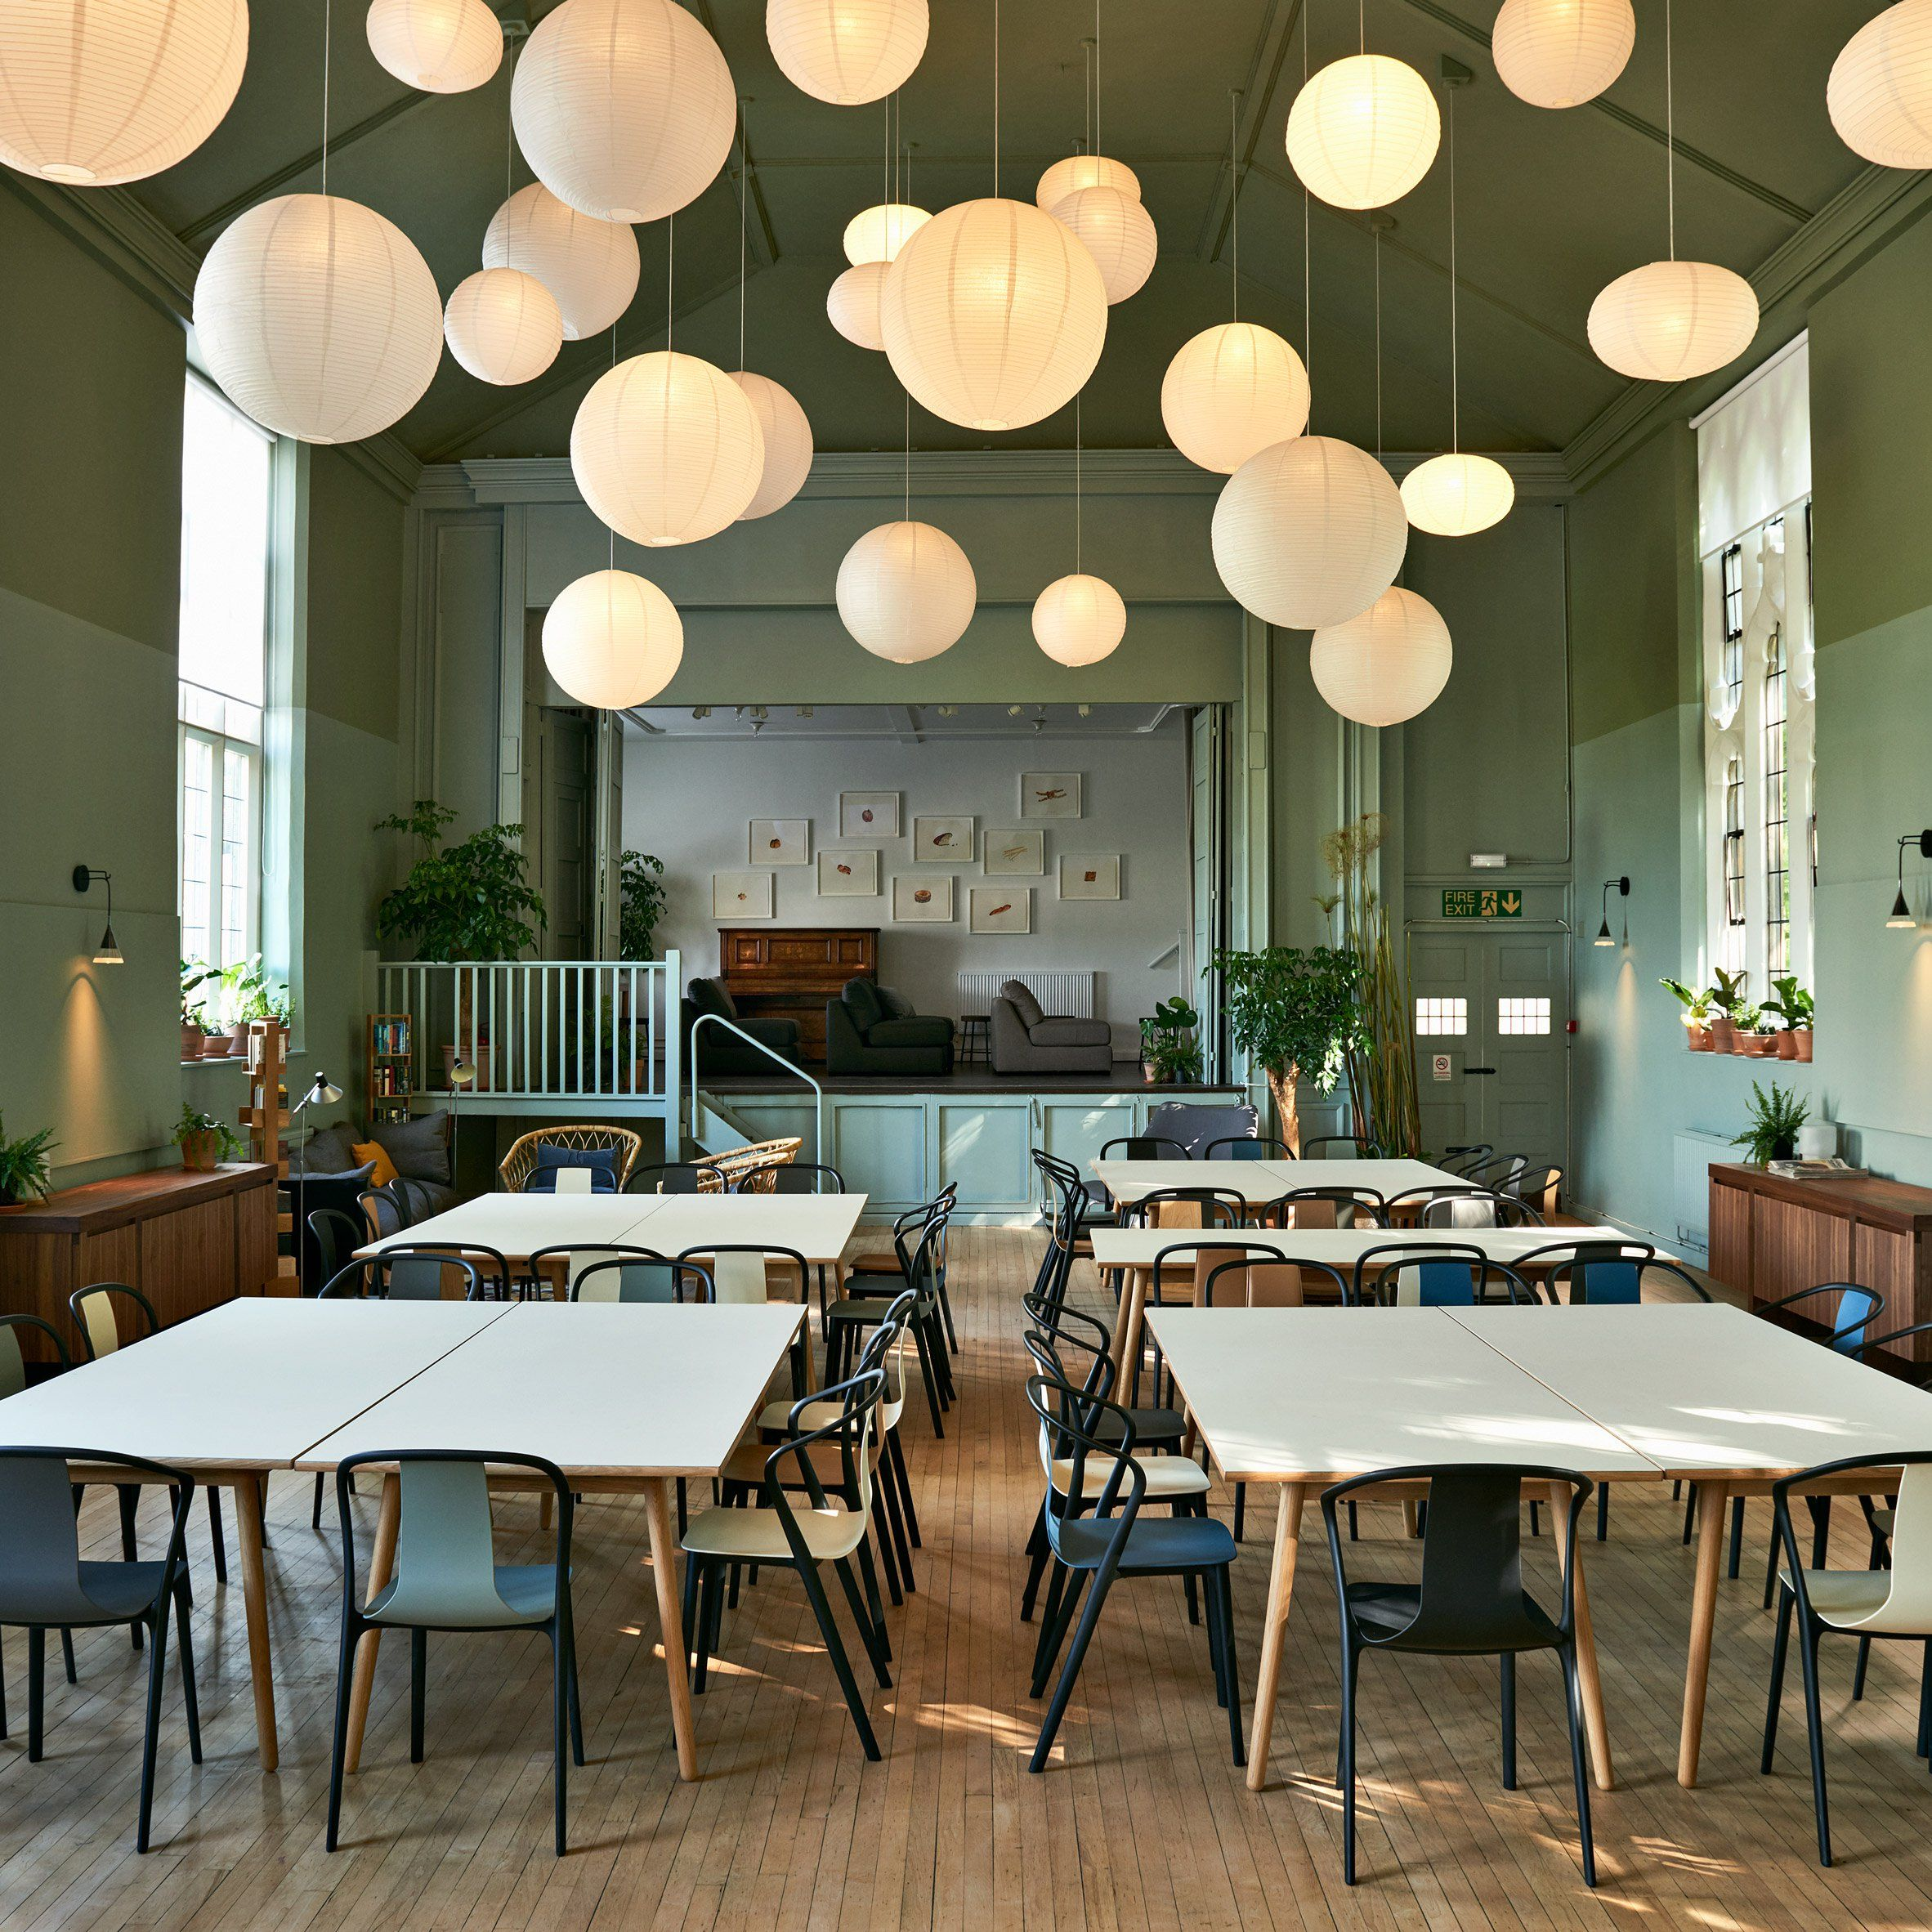 Kitchen Design London: Renowned Chef Massimo Bottura Has Opened An Ilse Crawford-designed Community Kitchen In